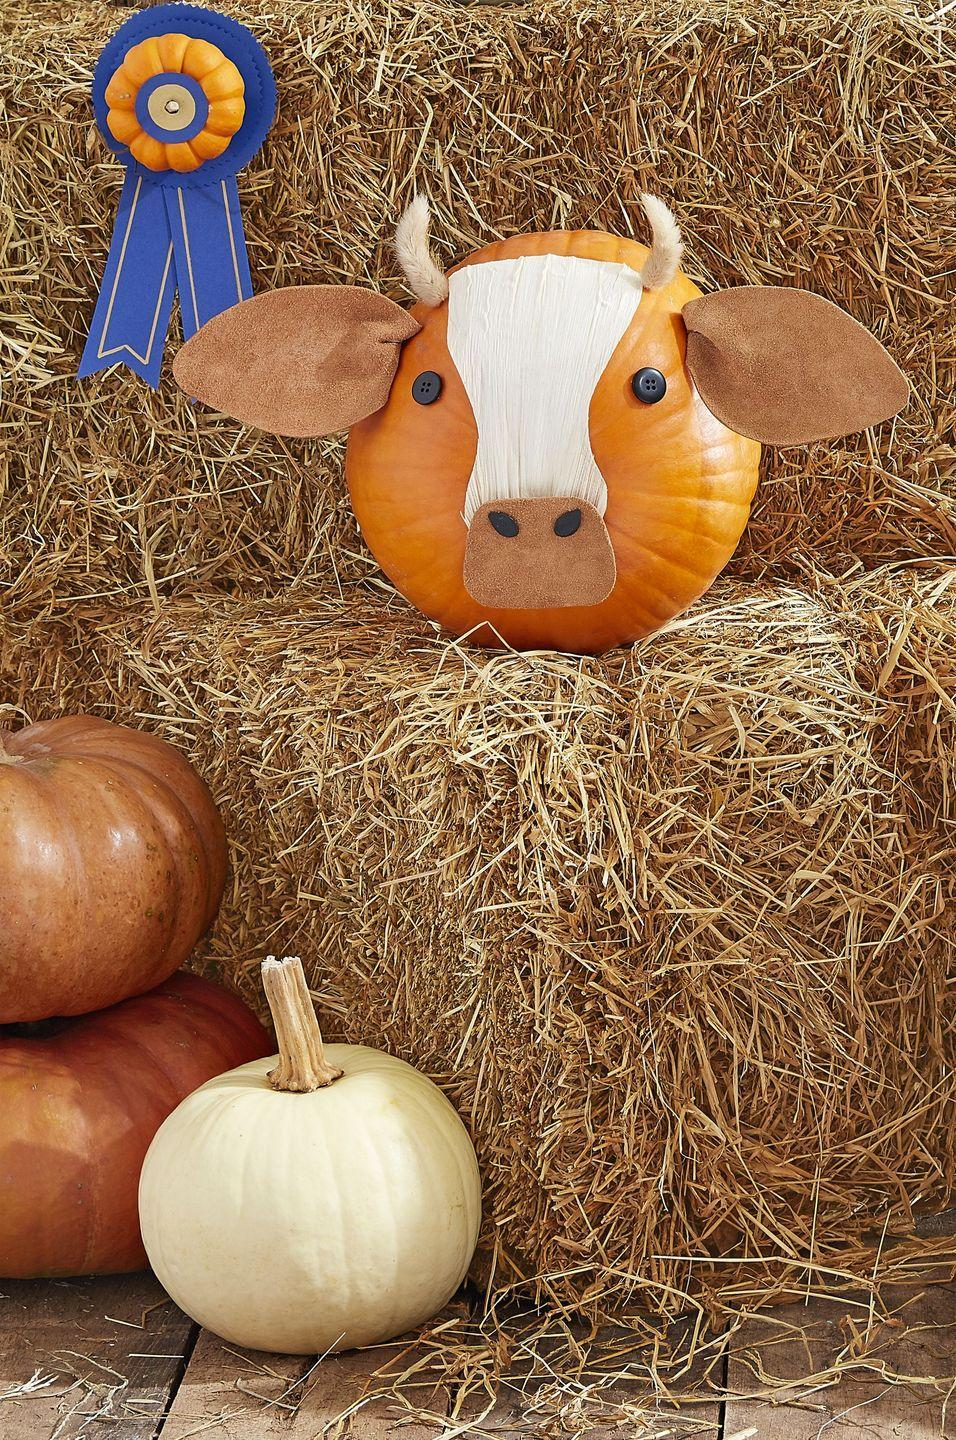 """<p>Moo-yah! <strong><br></strong></p><p><strong>Make the pumpkin:</strong> Download our <a href=""""https://hmg-prod.s3.amazonaws.com/files/pumpkin-carving-template-cow-ears-1018-1536169820.pdf?tag=syn-yahoo-20&ascsubtag=%5Bartid%7C10050.g.28437255%5Bsrc%7Cyahoo-us"""" rel=""""nofollow noopener"""" target=""""_blank"""" data-ylk=""""slk:cow ear and nose templates"""" class=""""link rapid-noclick-resp"""">cow ear and nose templates</a> and trace on brown leather, scaling up or down based on the size of your pumpkin; cut out. Download our <a href=""""https://hmg-prod.s3.amazonaws.com/files/pumpkin-carving-template-cow-1018-1536169820.pdf?tag=syn-yahoo-20&ascsubtag=%5Bartid%7C10050.g.28437255%5Bsrc%7Cyahoo-us"""" rel=""""nofollow noopener"""" target=""""_blank"""" data-ylk=""""slk:forehead pattern"""" class=""""link rapid-noclick-resp"""">forehead pattern</a> and trace on a <a href=""""https://www.amazon.com/Los-Chileros-Corn-Husks-Ounce/dp/B009OYHC18/ref=sr_1_3?tag=syn-yahoo-20&ascsubtag=%5Bartid%7C10050.g.28437255%5Bsrc%7Cyahoo-us"""" rel=""""nofollow noopener"""" target=""""_blank"""" data-ylk=""""slk:corn husk"""" class=""""link rapid-noclick-resp"""">corn husk</a>, scaling up or down as necessary; cut out. Hot-glue ears, nose, and forehead to the bottom of a pumpkin. For nostrils, paint two pumpkin seeds with <a href=""""https://www.amazon.com/DecoArt-Crafters-Acrylic-Paint-2-Ounce/dp/B007WMHX0O?tag=syn-yahoo-20&ascsubtag=%5Bartid%7C10050.g.28437255%5Bsrc%7Cyahoo-us"""" rel=""""nofollow noopener"""" target=""""_blank"""" data-ylk=""""slk:black craft paint"""" class=""""link rapid-noclick-resp"""">black craft paint</a> and attach with hot glue. Finally, paste black buttons for eyes and <a href=""""https://www.amazon.com/LIVING-LEGEND-Natural-Rabbit-Grass/dp/B08LCLLTD5/ref=sr_1_3_sspa?tag=syn-yahoo-20&ascsubtag=%5Bartid%7C10050.g.28437255%5Bsrc%7Cyahoo-us"""" rel=""""nofollow noopener"""" target=""""_blank"""" data-ylk=""""slk:dried bunny tail grass"""" class=""""link rapid-noclick-resp"""">dried bunny tail grass</a> tops for horns. </p>"""